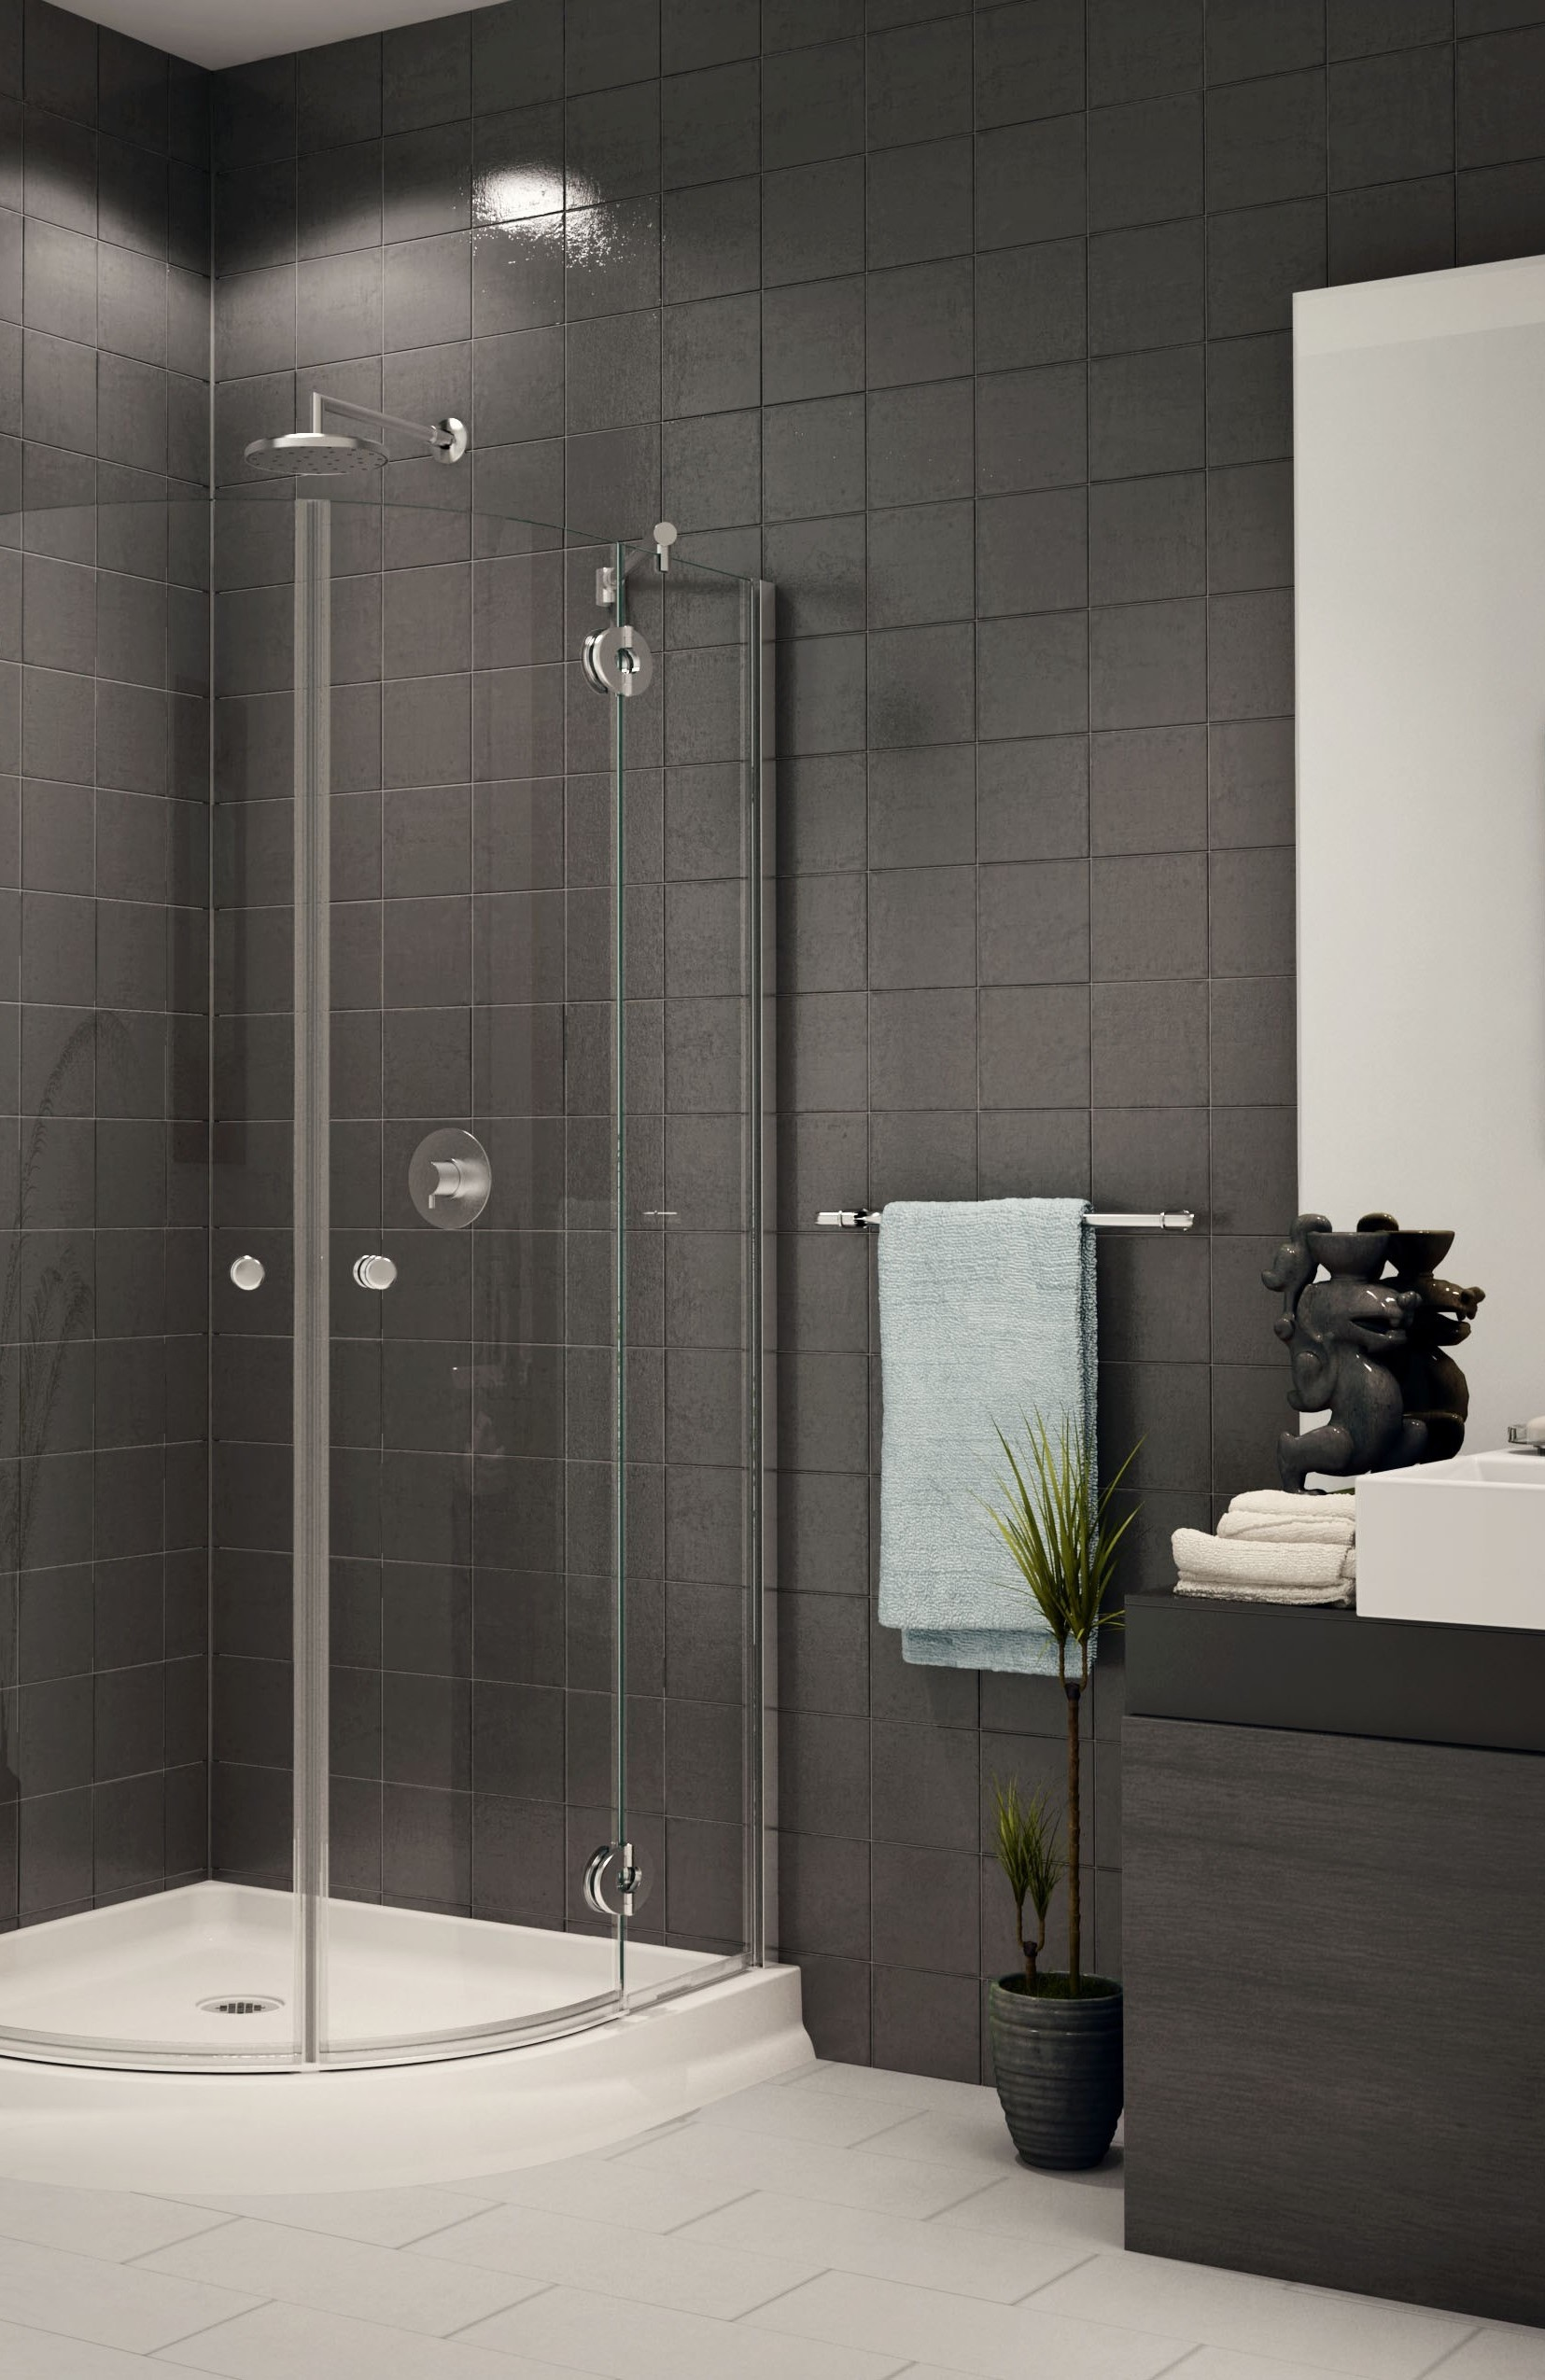 Bathroom Remodeling And Renovation Contractor Serving Westchester Ny Rockland Ny And Greenwich Ct